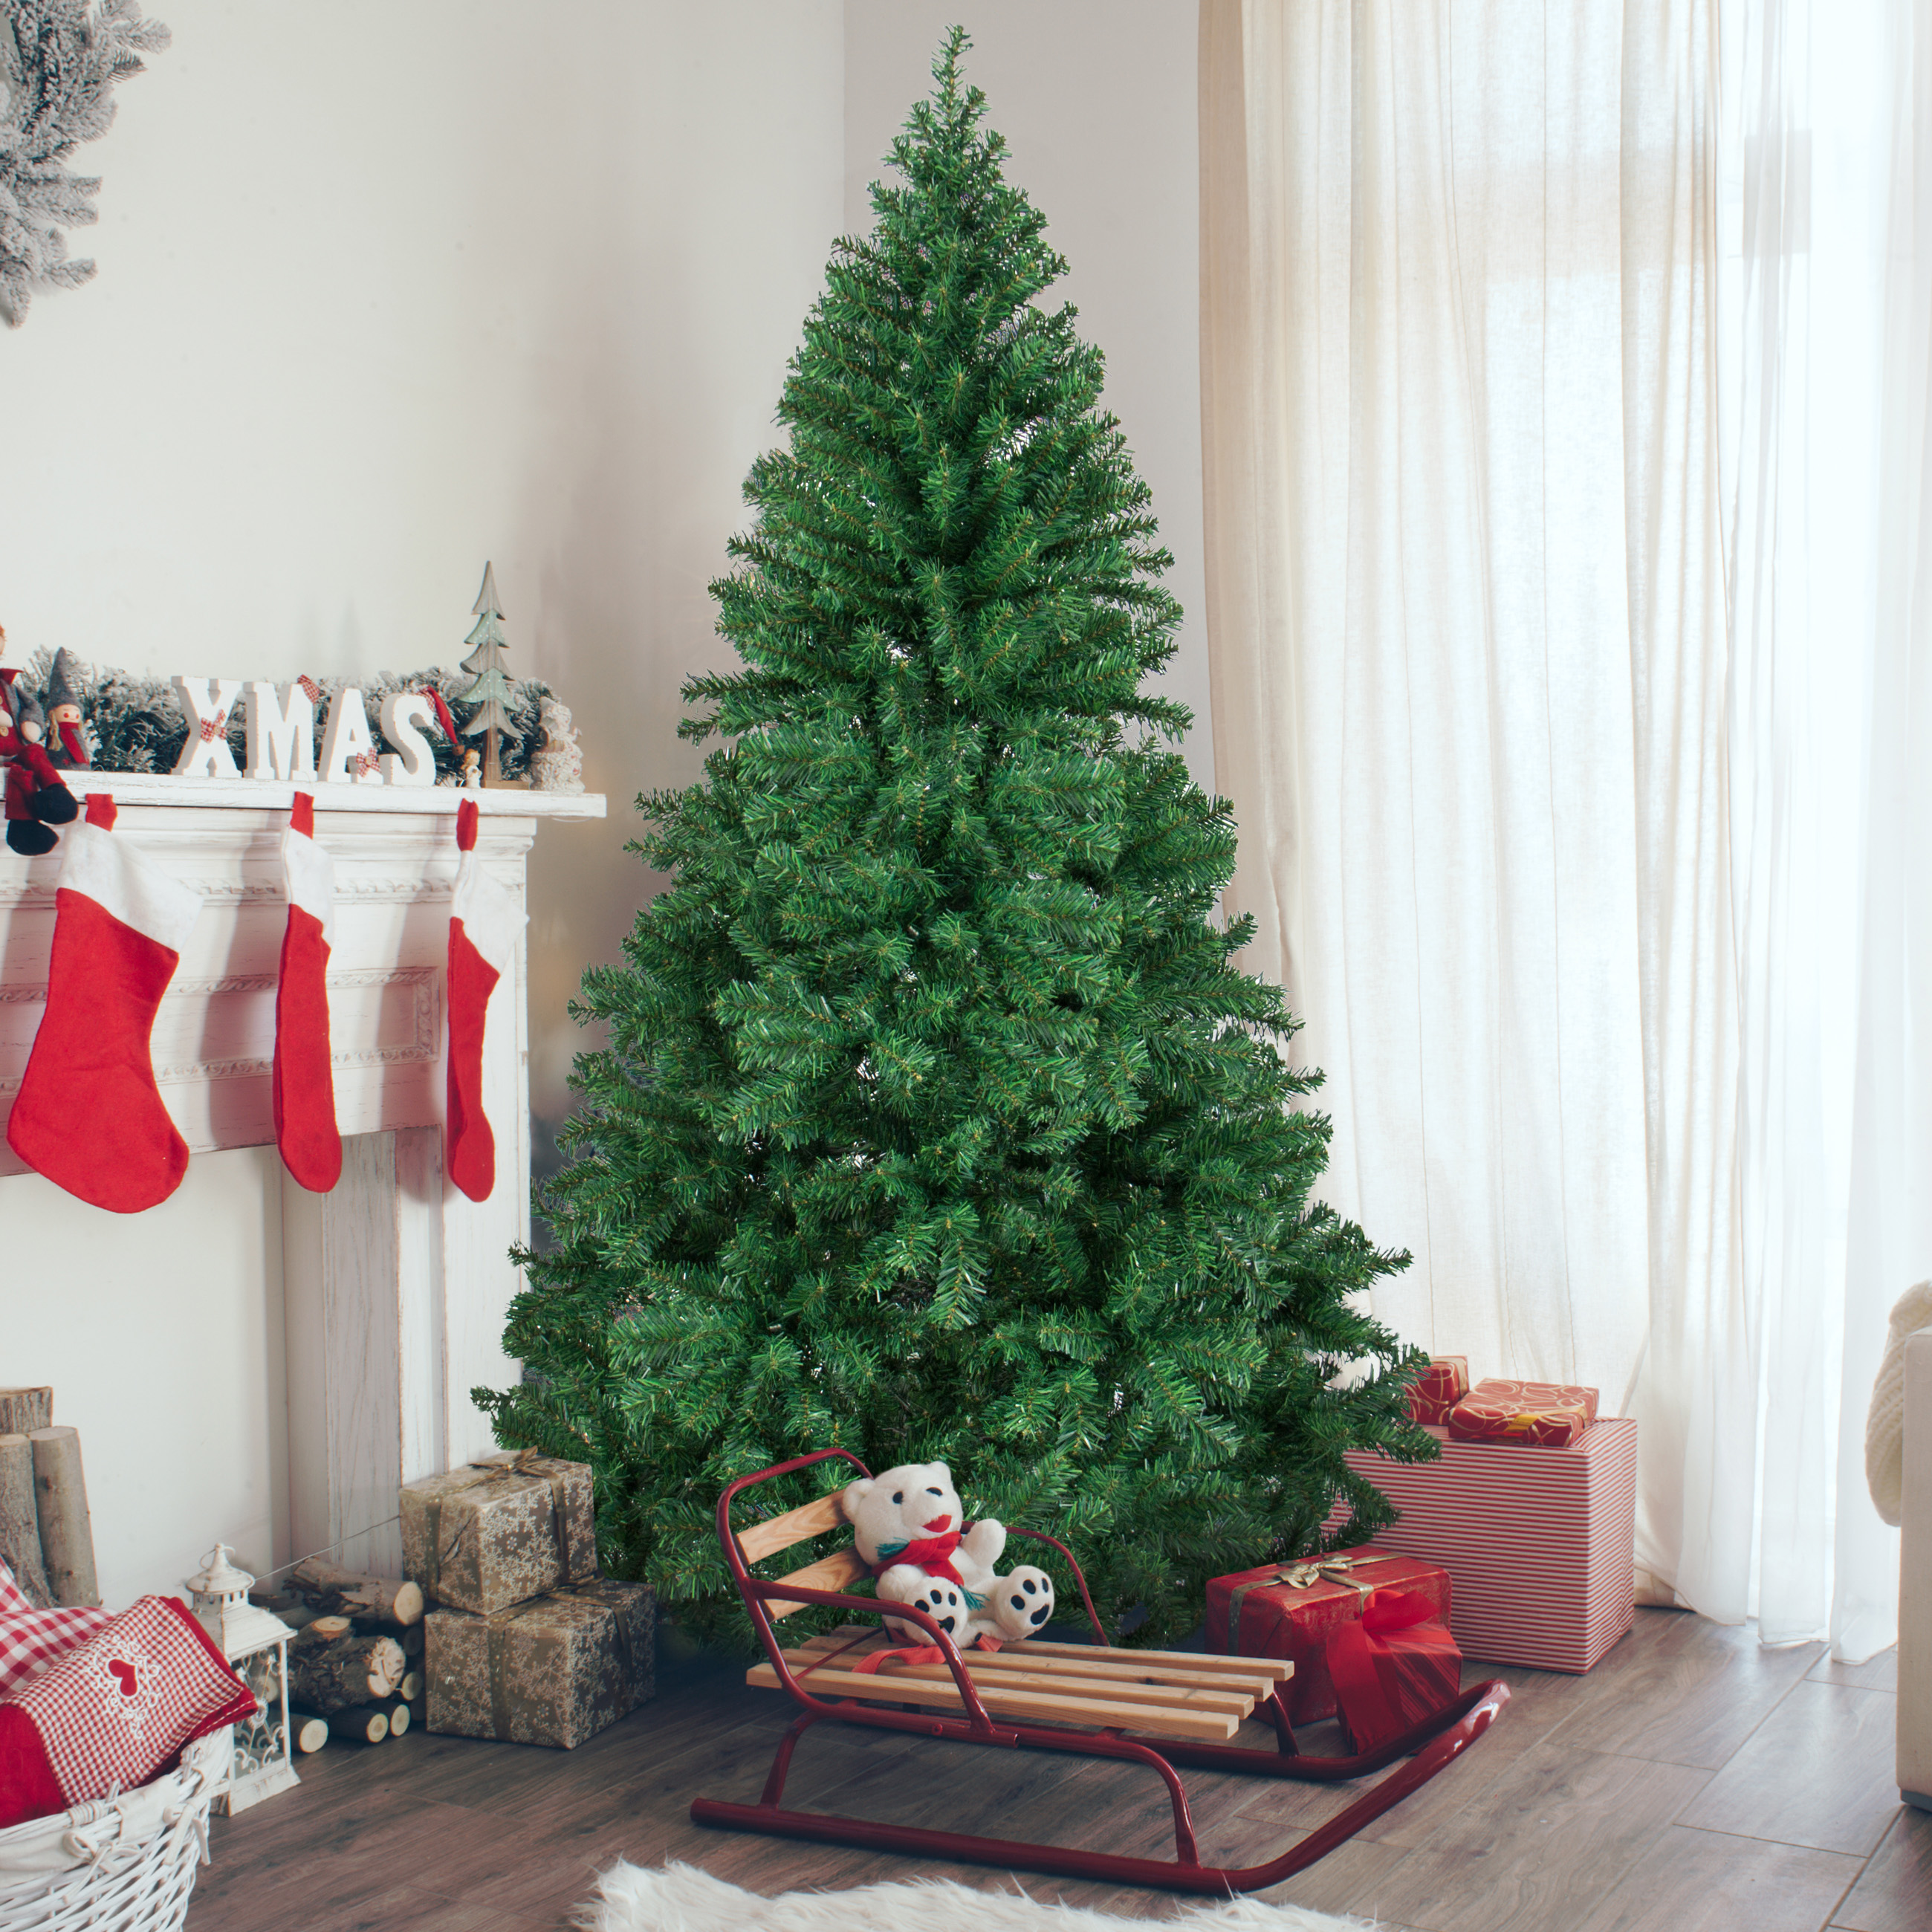 6' Premium Artificial Christmas Pine Tree with Solid Metal Legs, 1000 Tips, Full Tree